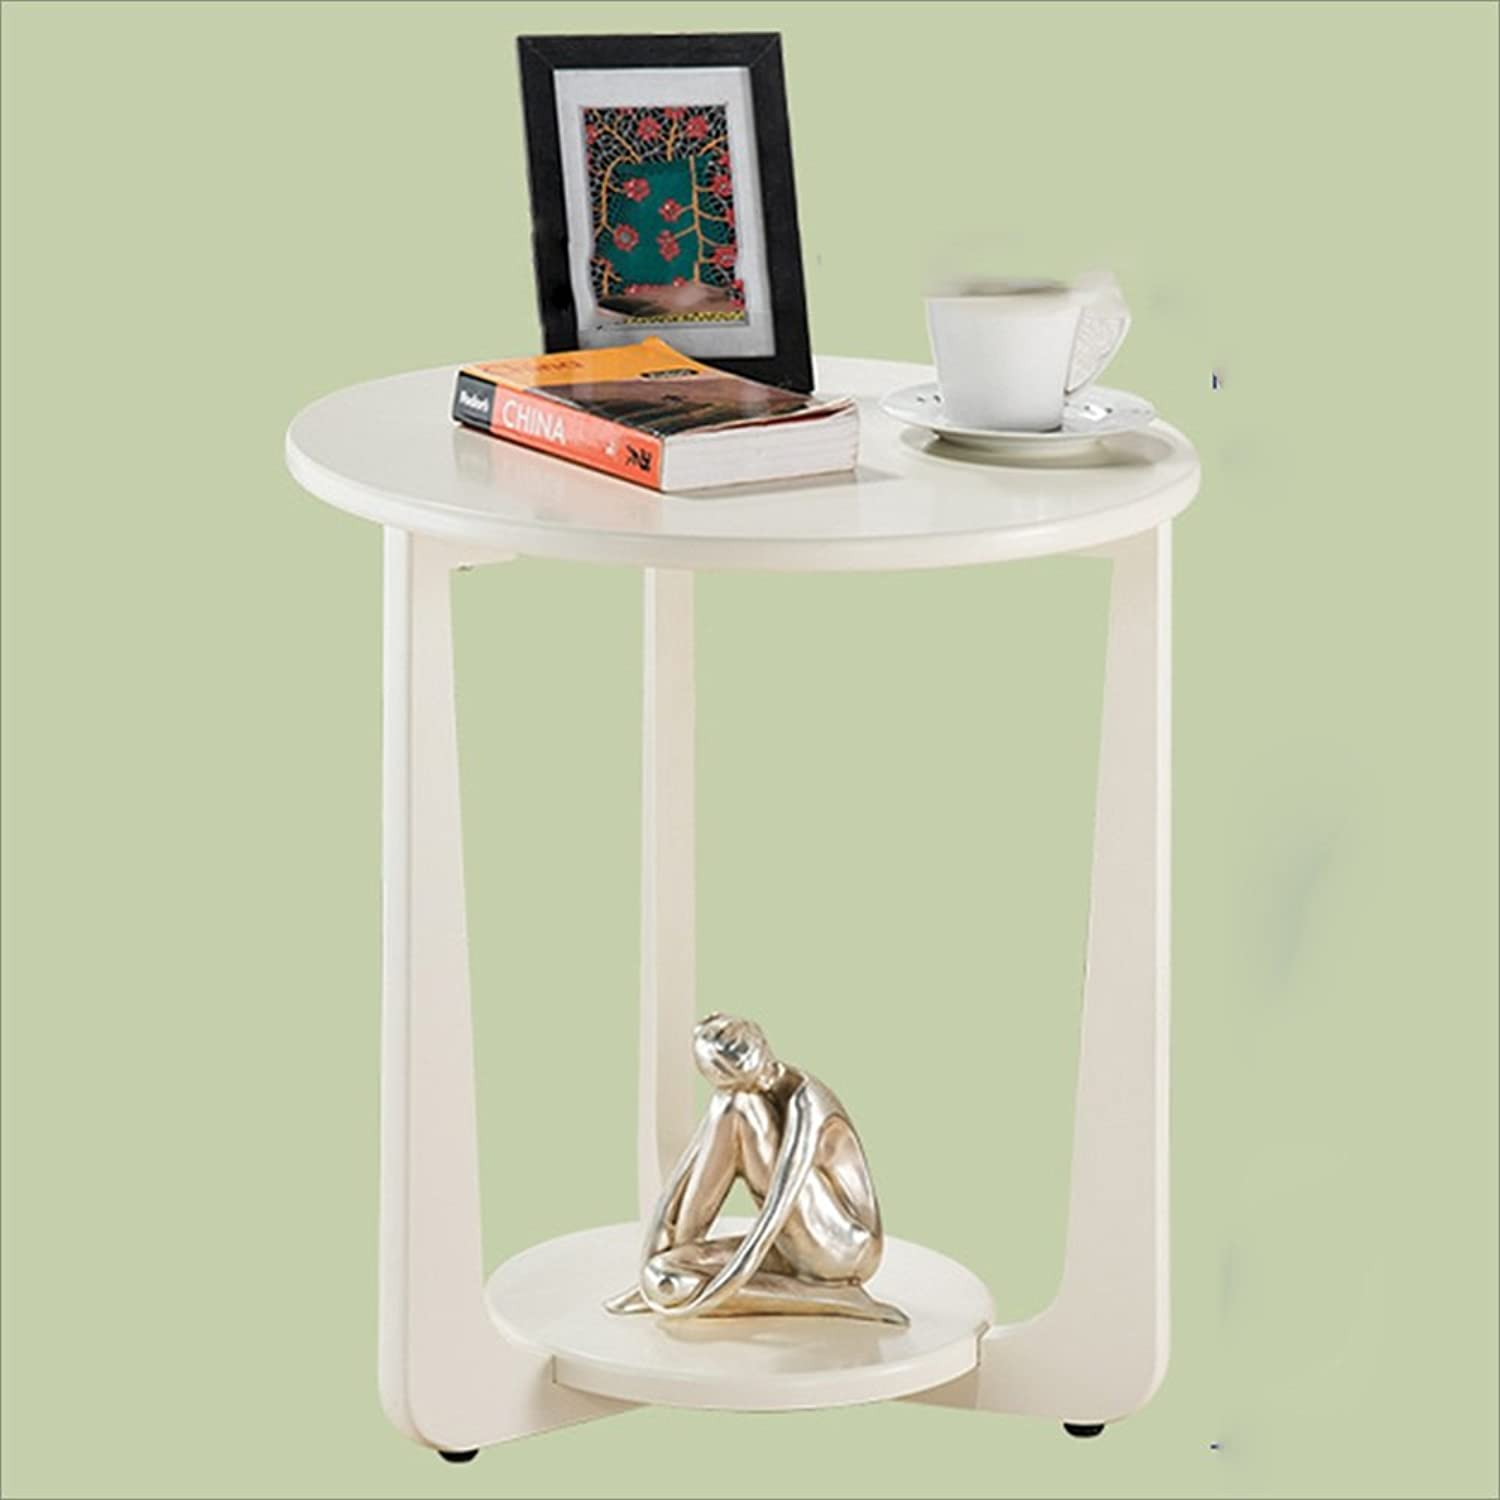 NAN American Sofa Side Table European-Style Simple Round Coffee Table Small Coffee Table A Few Corner Coffee Phone Table Folding Tables (color   Milky White)